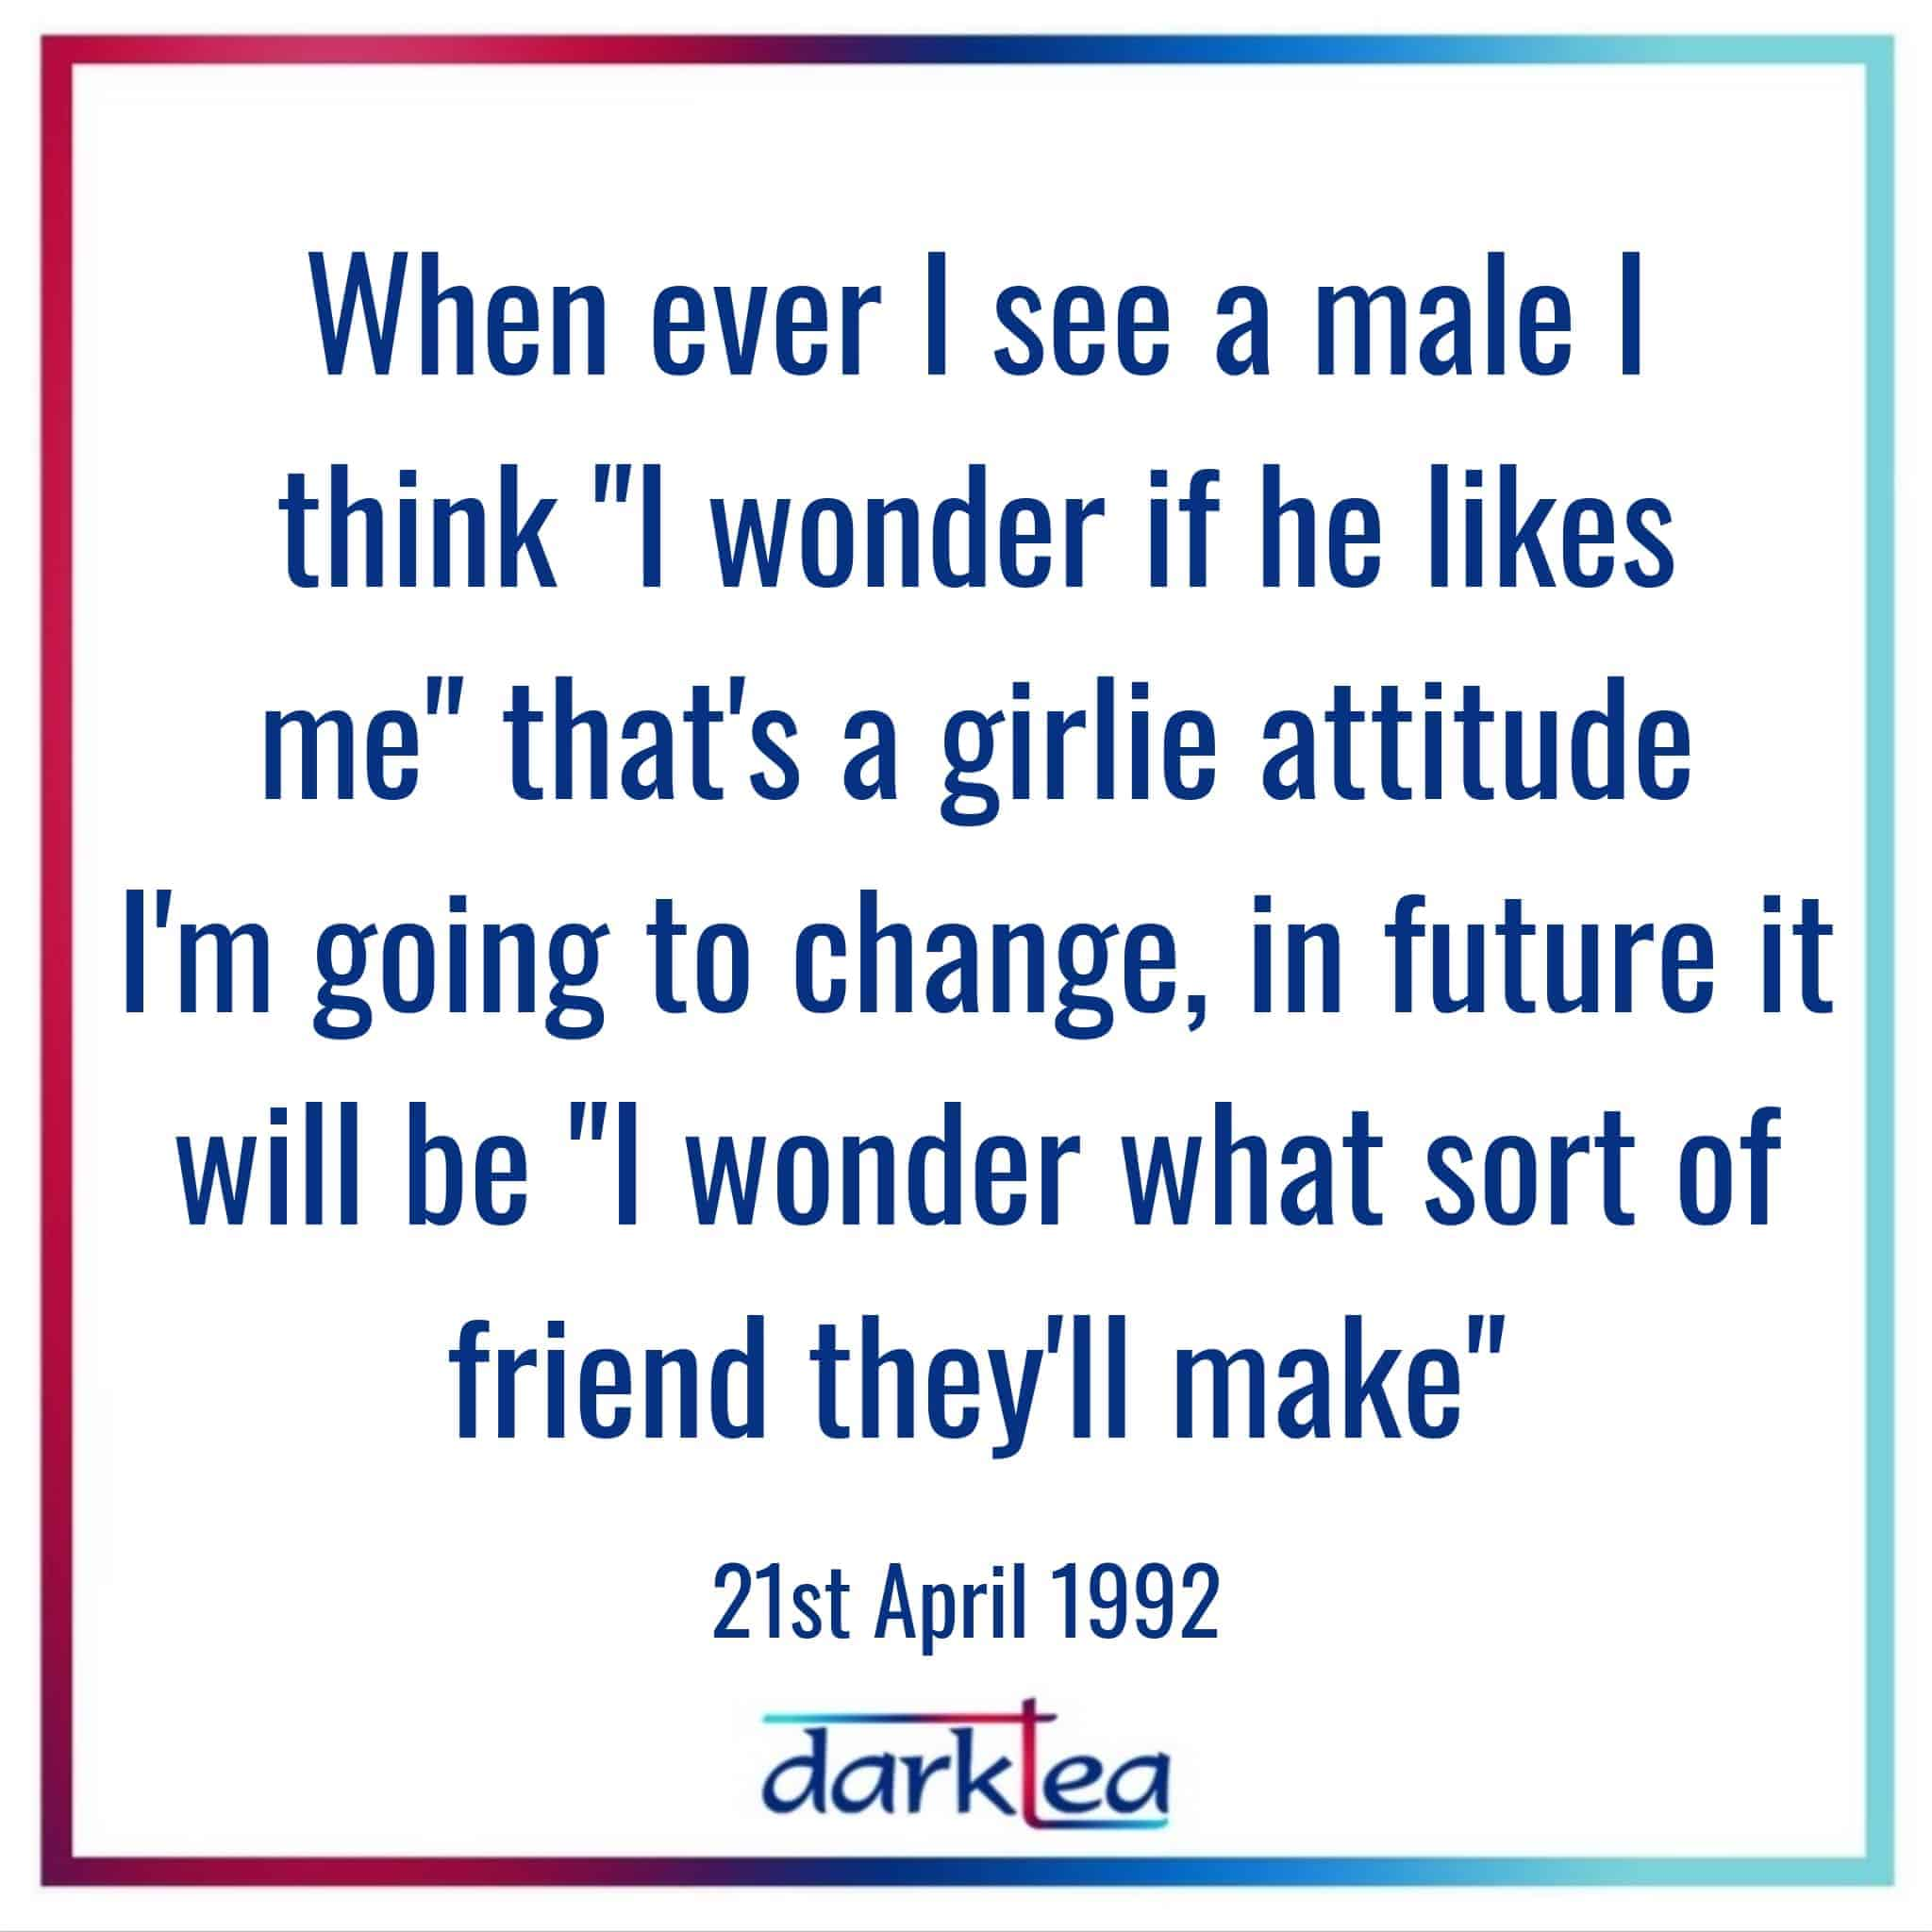 """Whenever I see a male I think """"I wonder if he like me"""" that is a girlie attitue I'm going to change, in future it will be """"I wonder what sort of friend they'll make"""""""